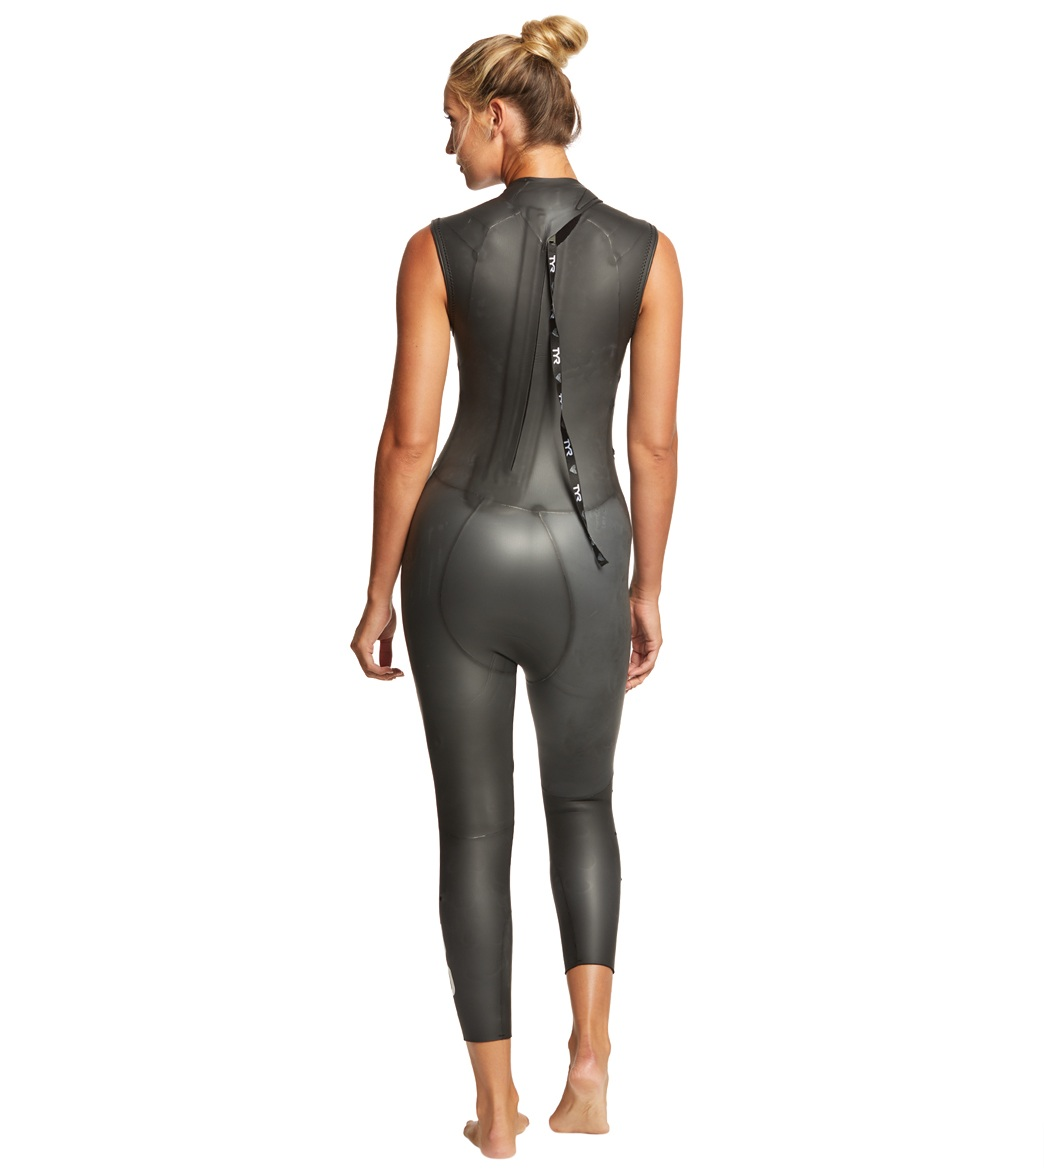 f69396f0ba TYR Women s Hurricane Cat 1 Sleeveless Triathlon Wetsuit at SwimOutlet.com  - Free Shipping